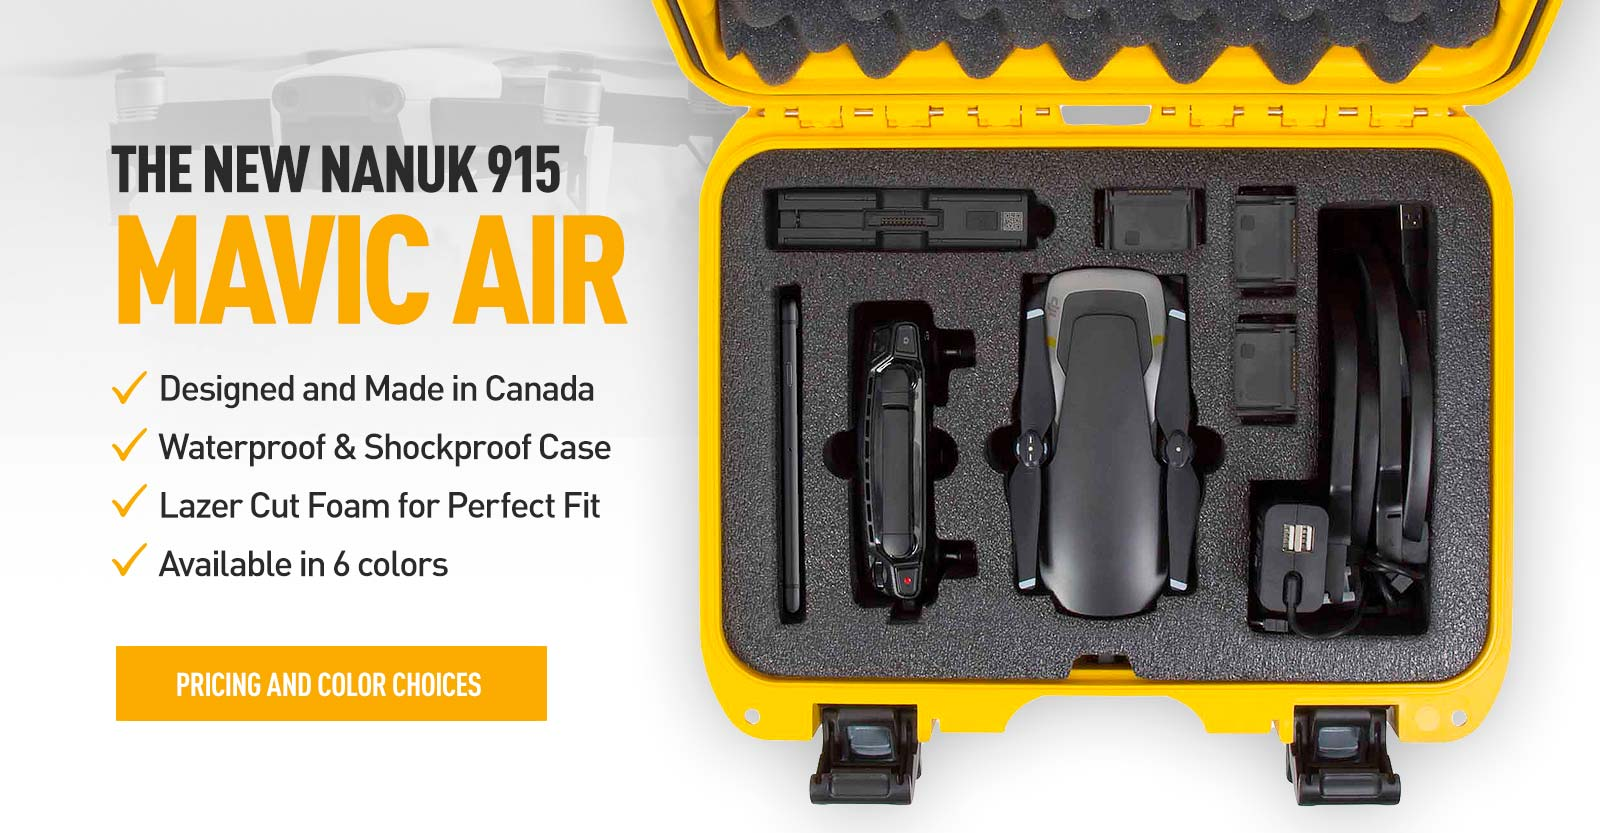 Nanuk 915 Hard Case for the Mavic Air in Yellow